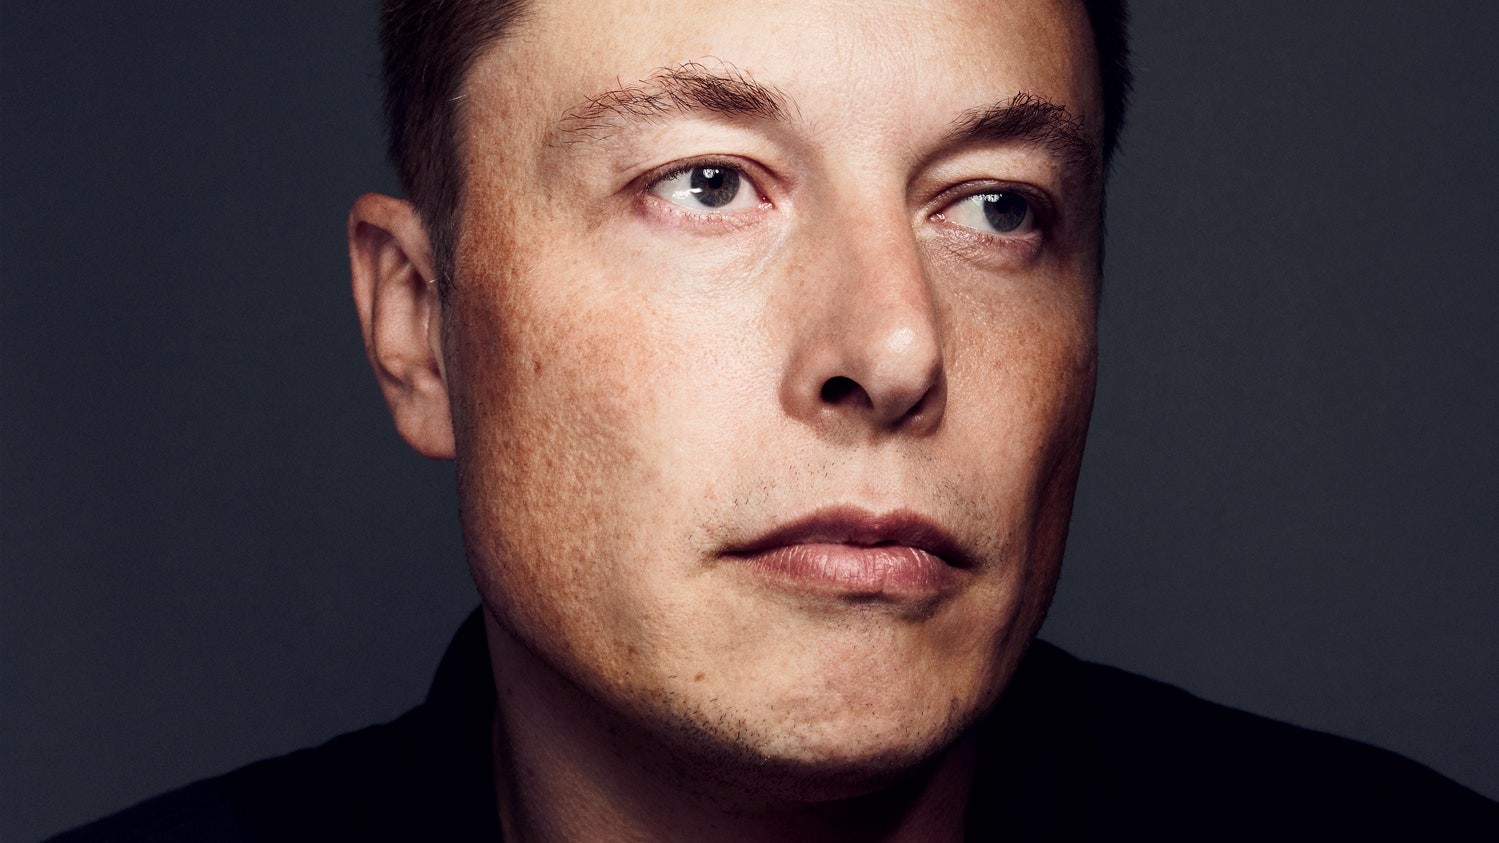 Elon Musk Is Ready to Conquer Mars